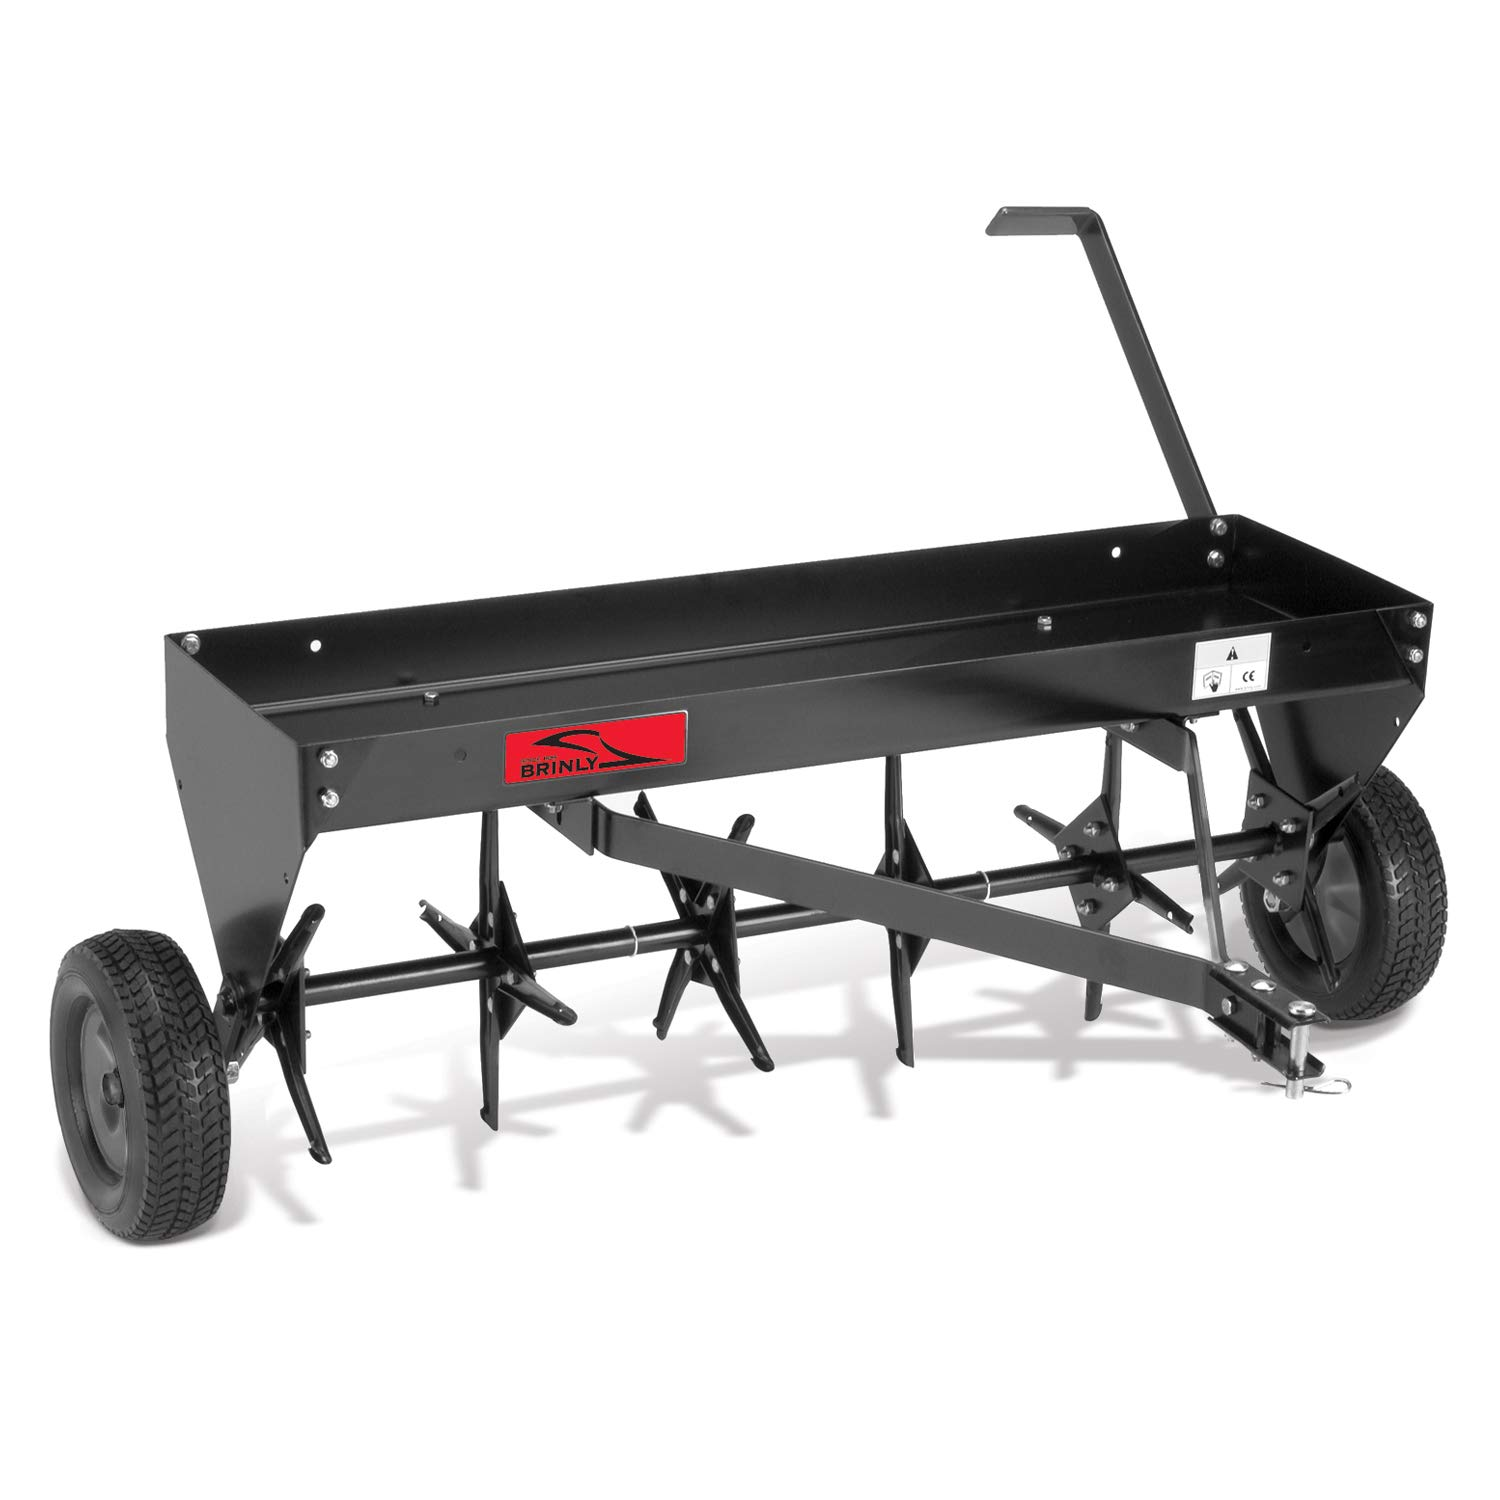 Brinly PA-40BH Tow Behind Plug Aerator, 40-Inch by Brinly (Image #1)